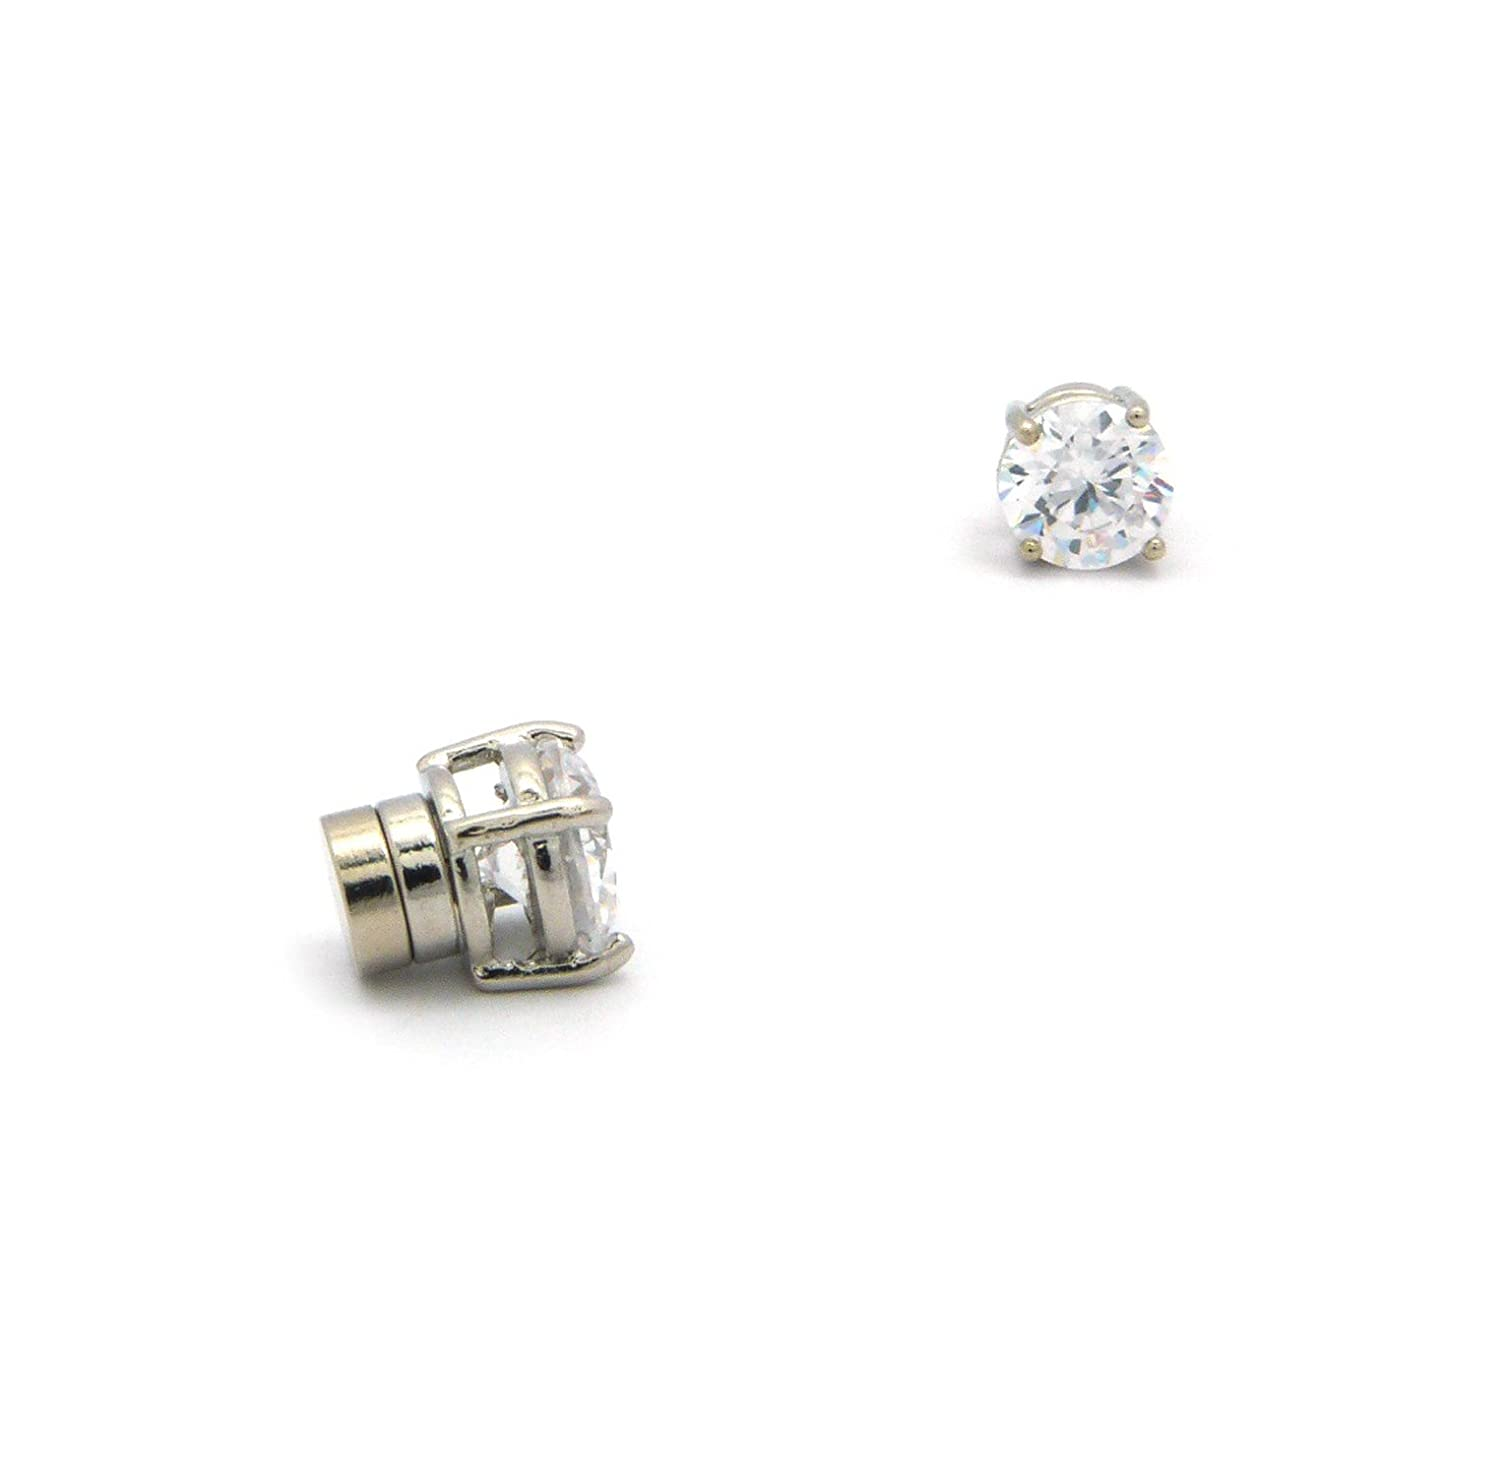 online cubic johnlewis main zirconia kate pave new spade at bloom buykate pdp john rsp stud earrings york silver